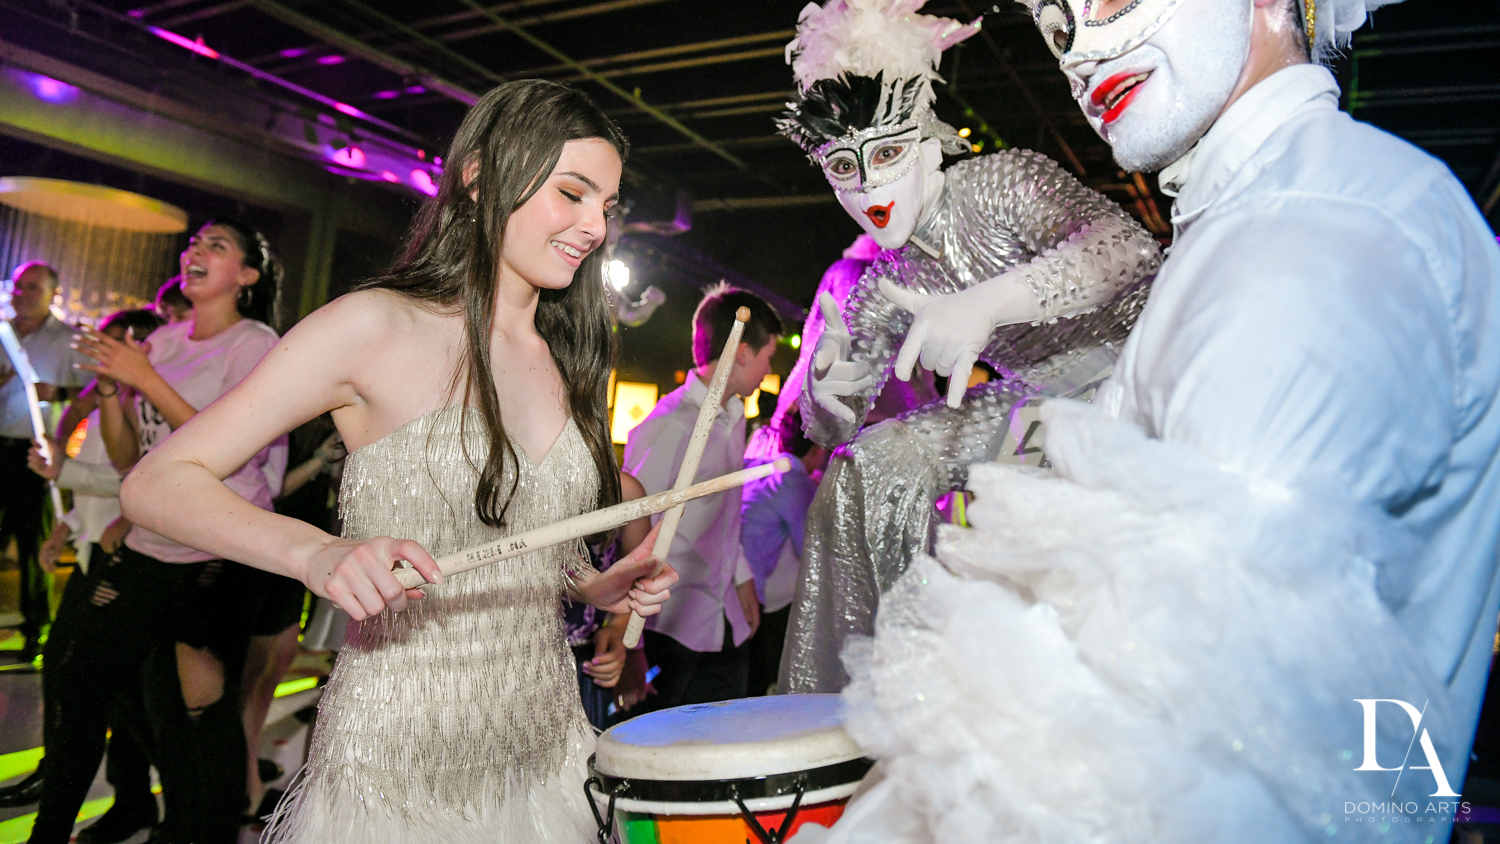 drummers at Fashion Theme Bat Mitzvah at Gallery of Amazing Things by Domino Arts Photography